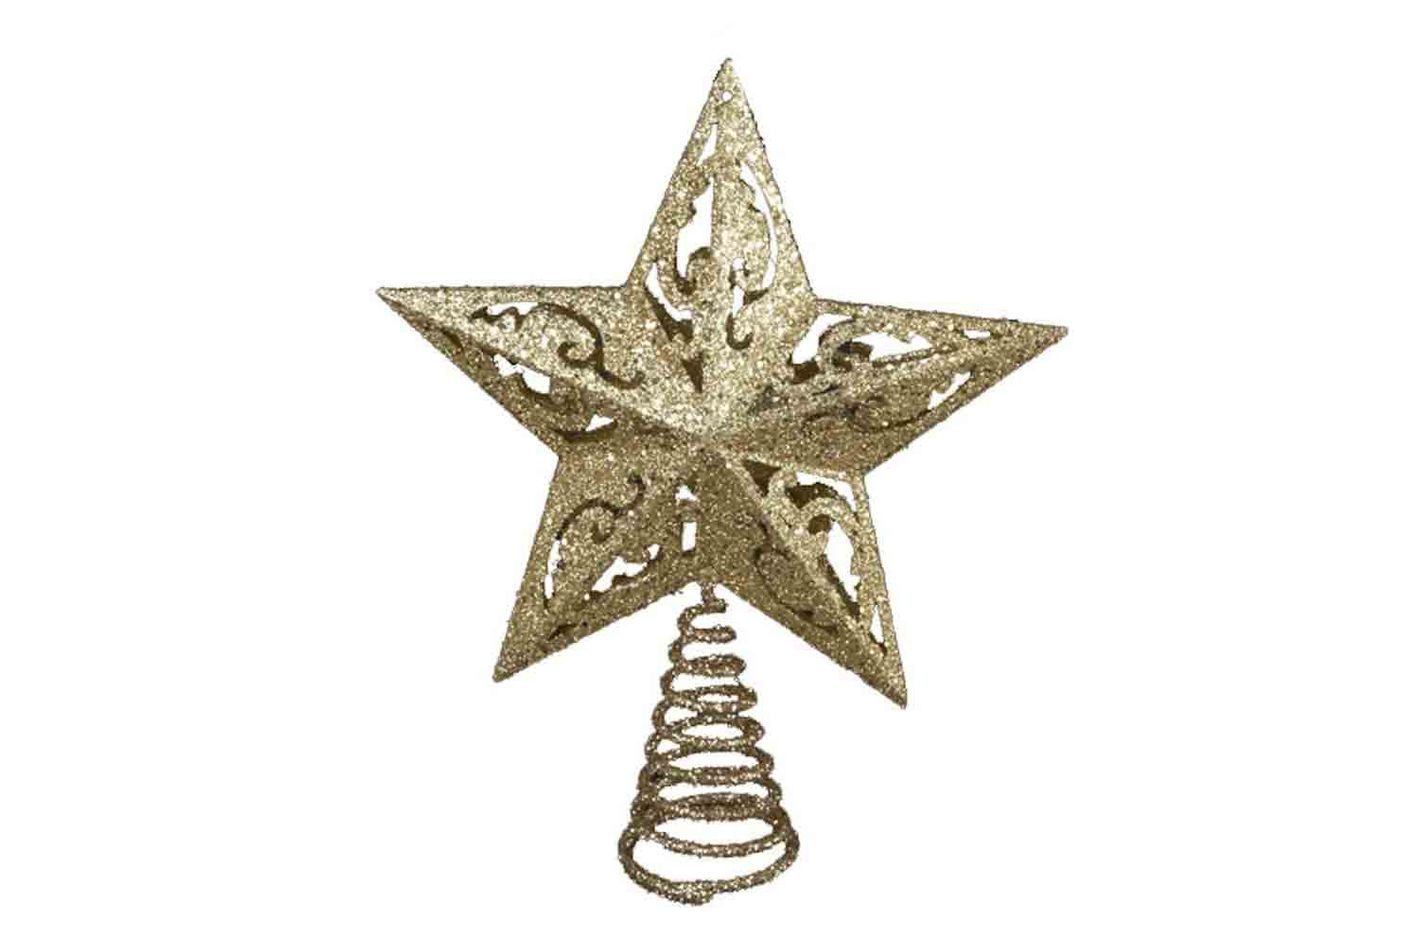 best traditional star christmas tree topper kurt adler 8 inch gold glittered 5 point star treetop